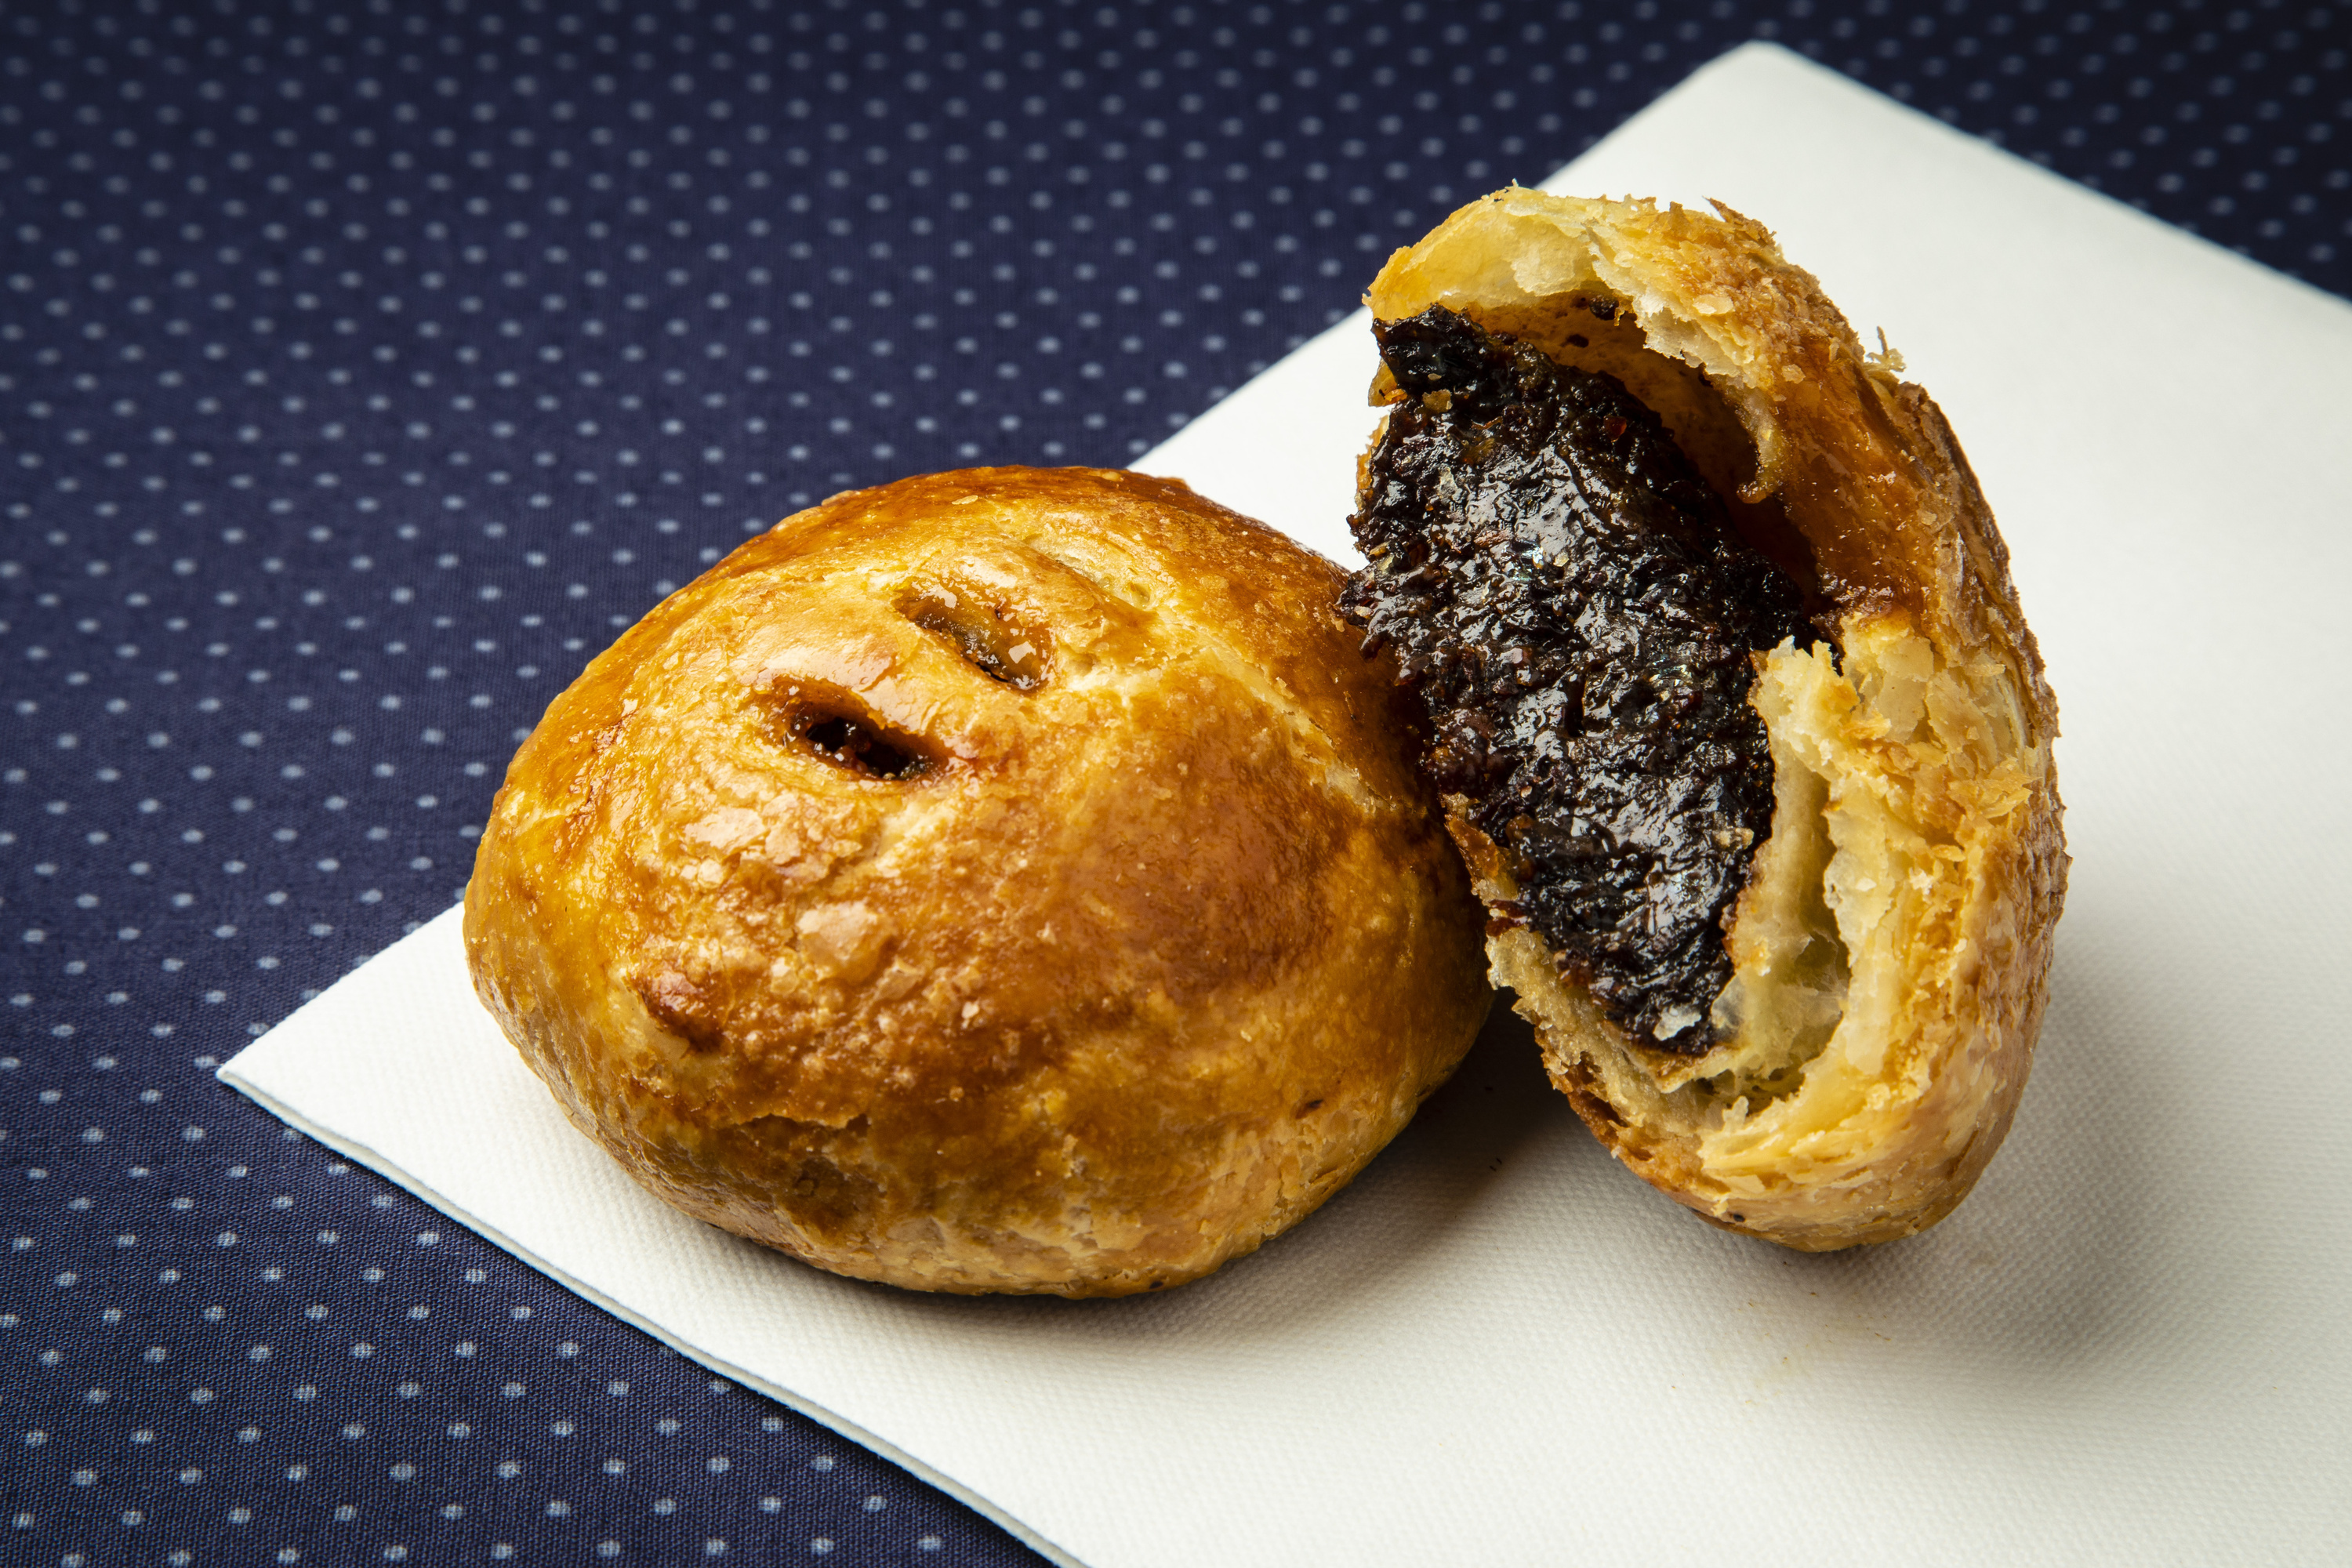 Eccles cake at St John